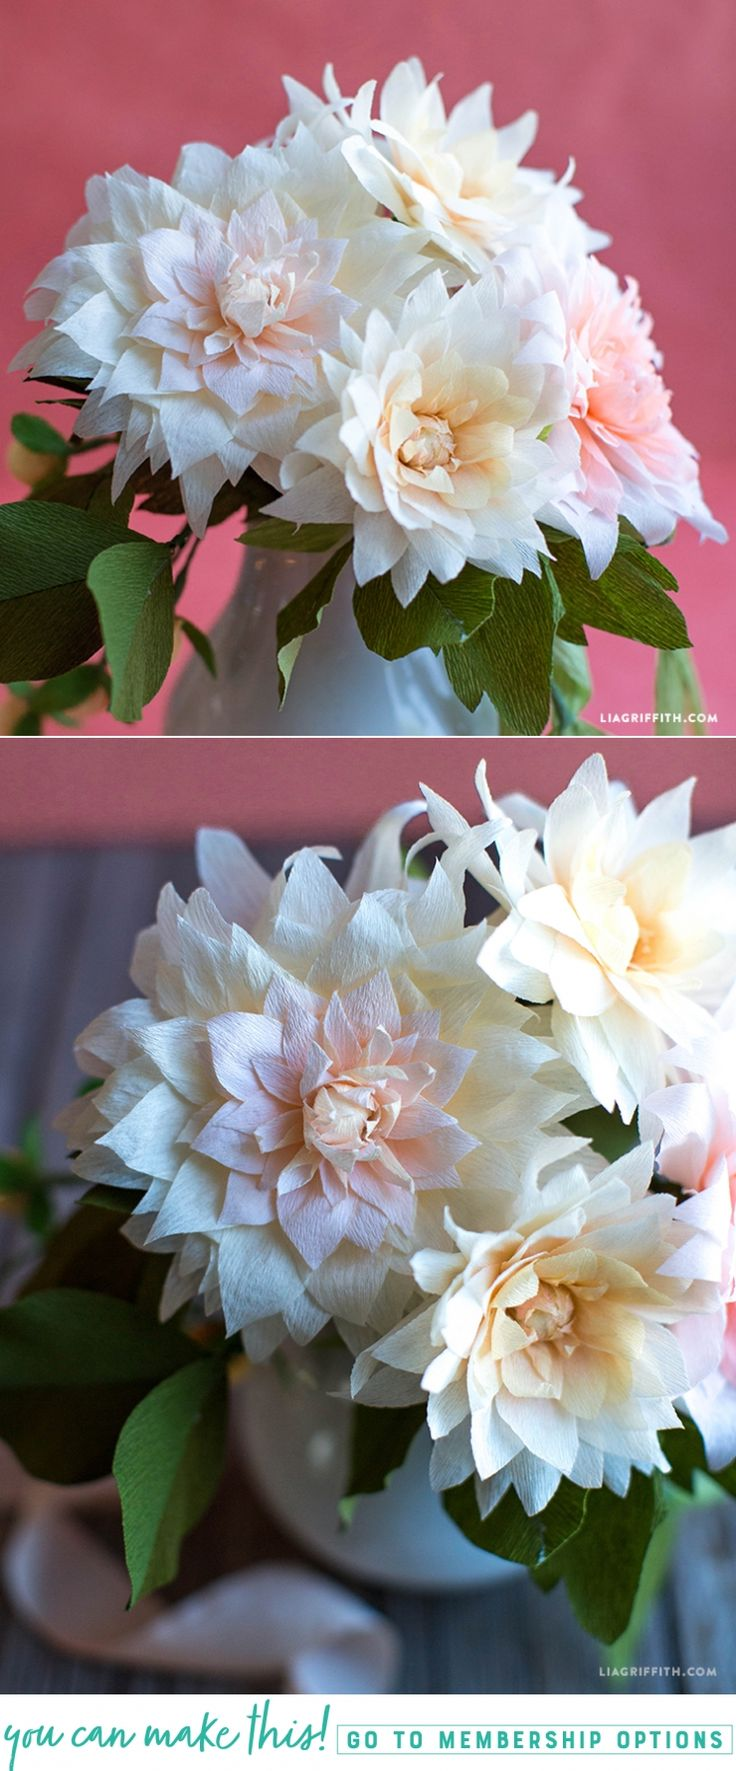 #crepepaperflowers #crepepaperrevival www.LiaGriffith.com